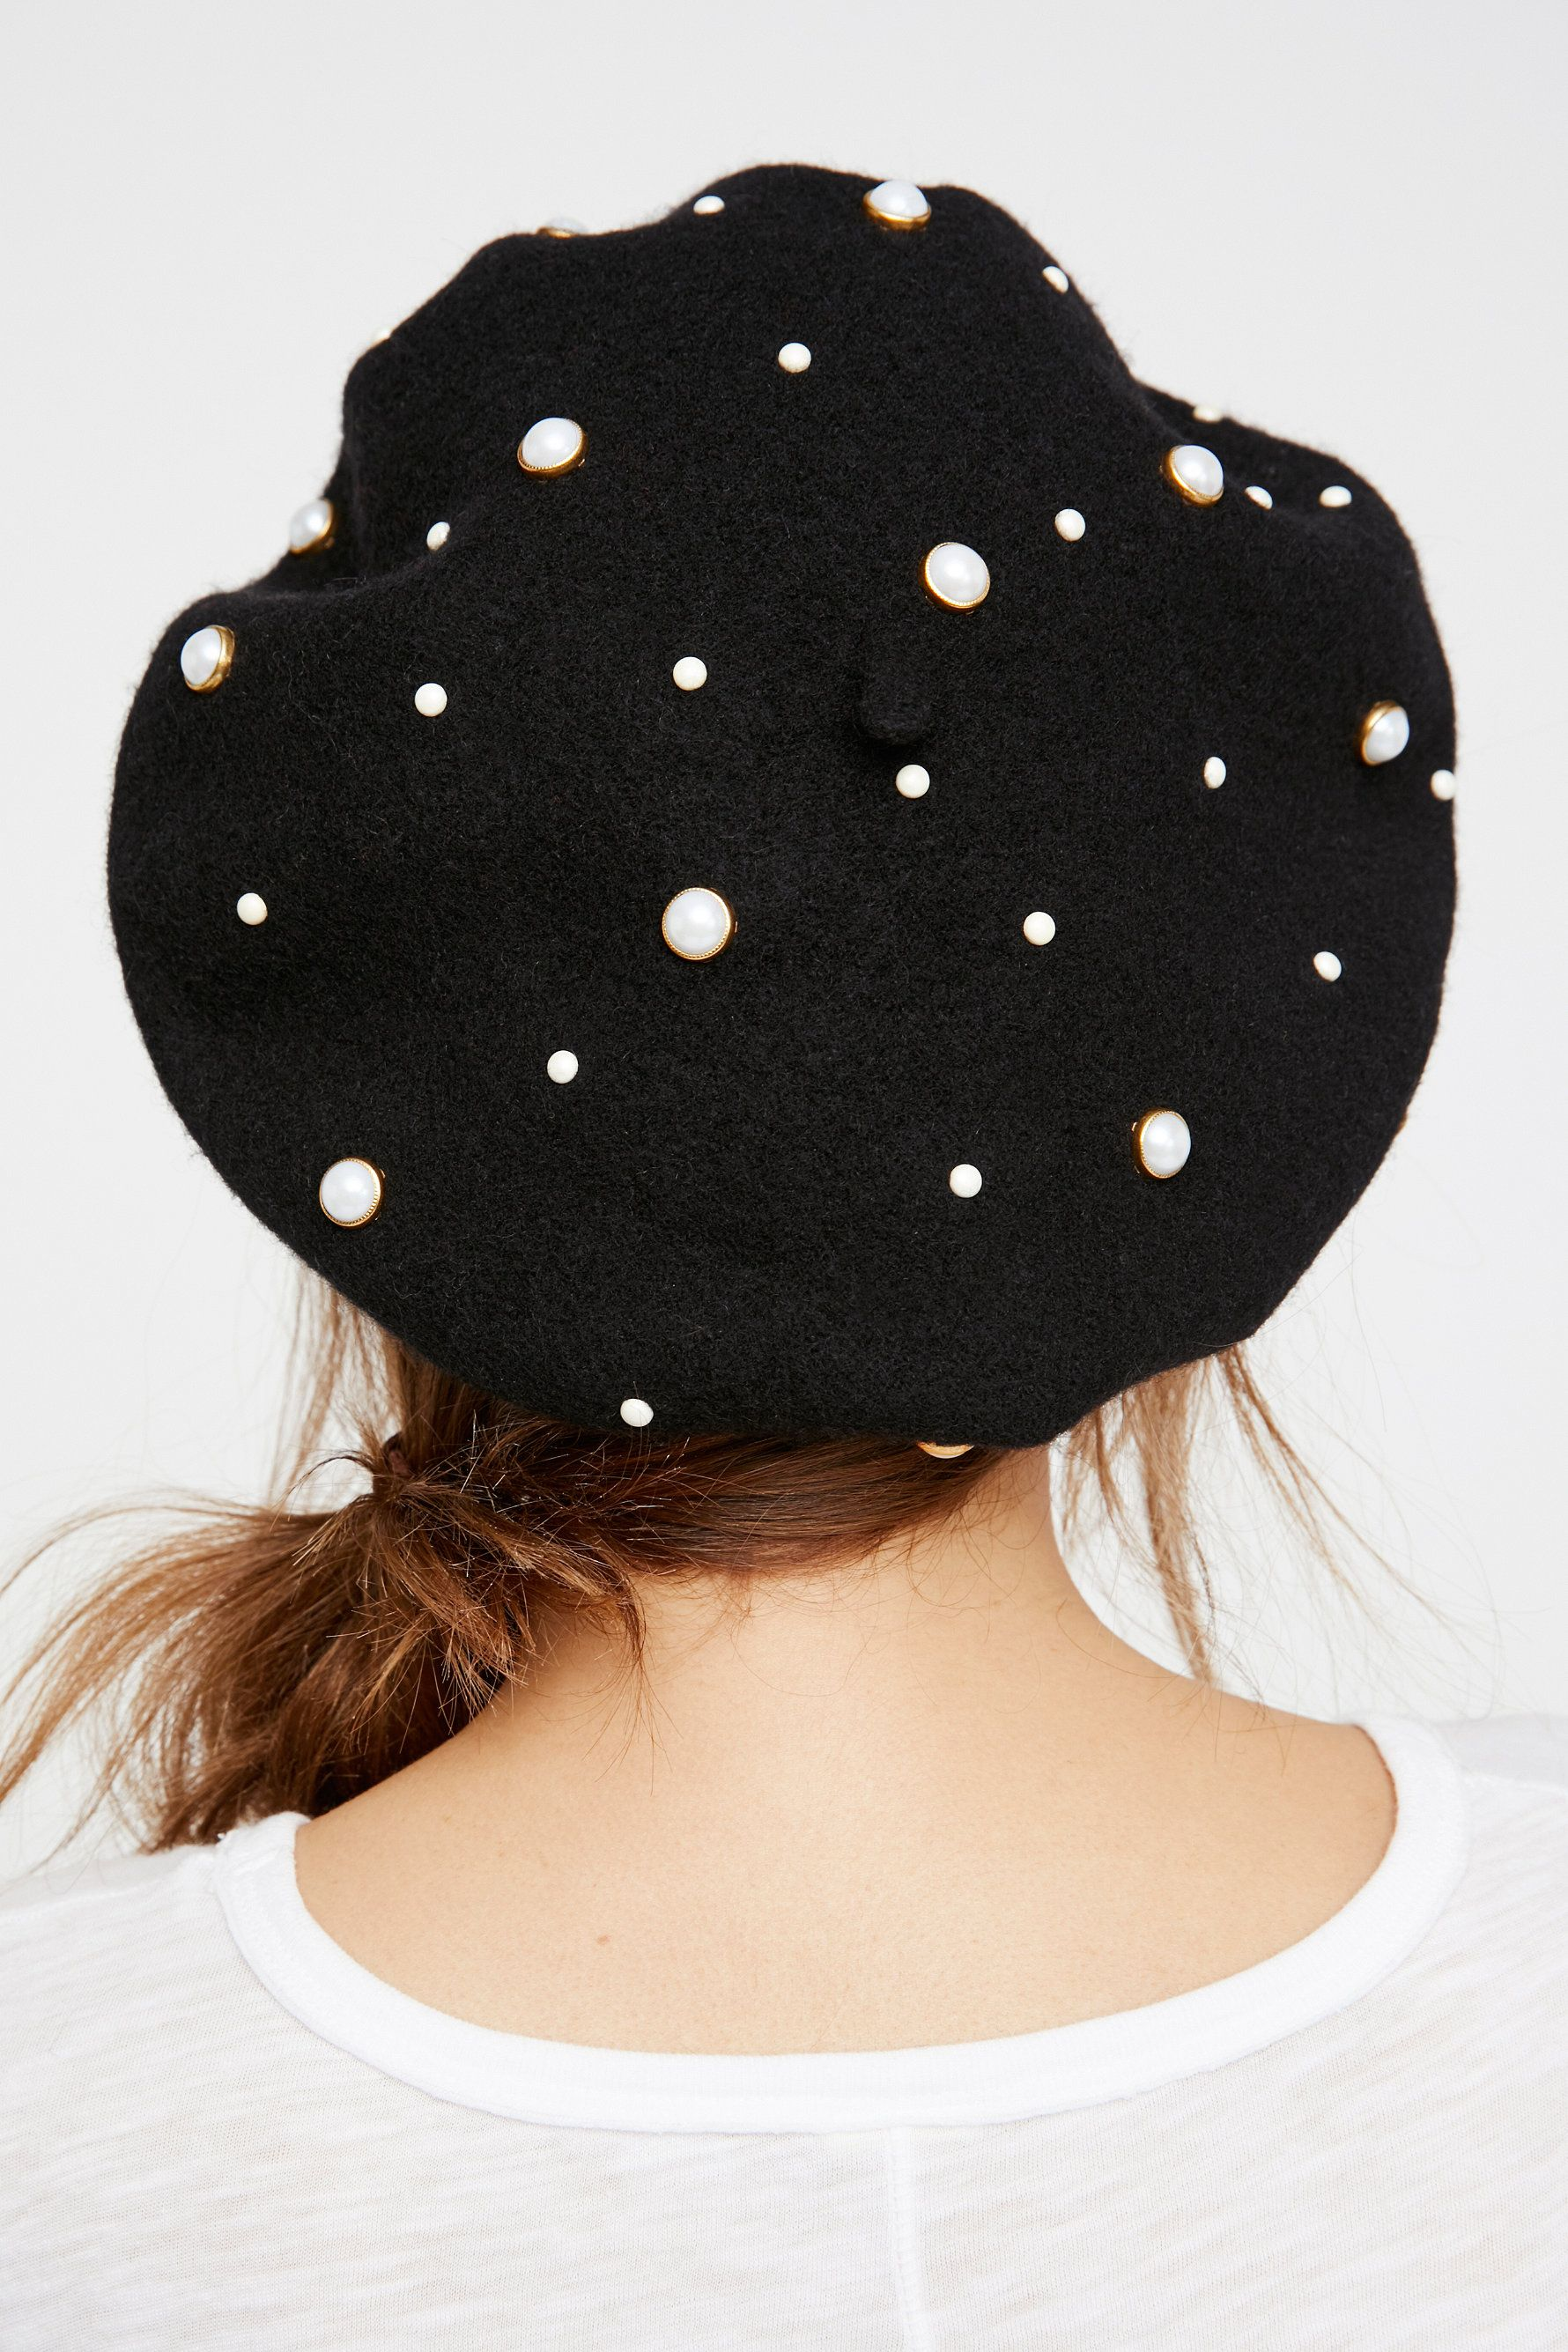 The Last Dance Embellished Beret